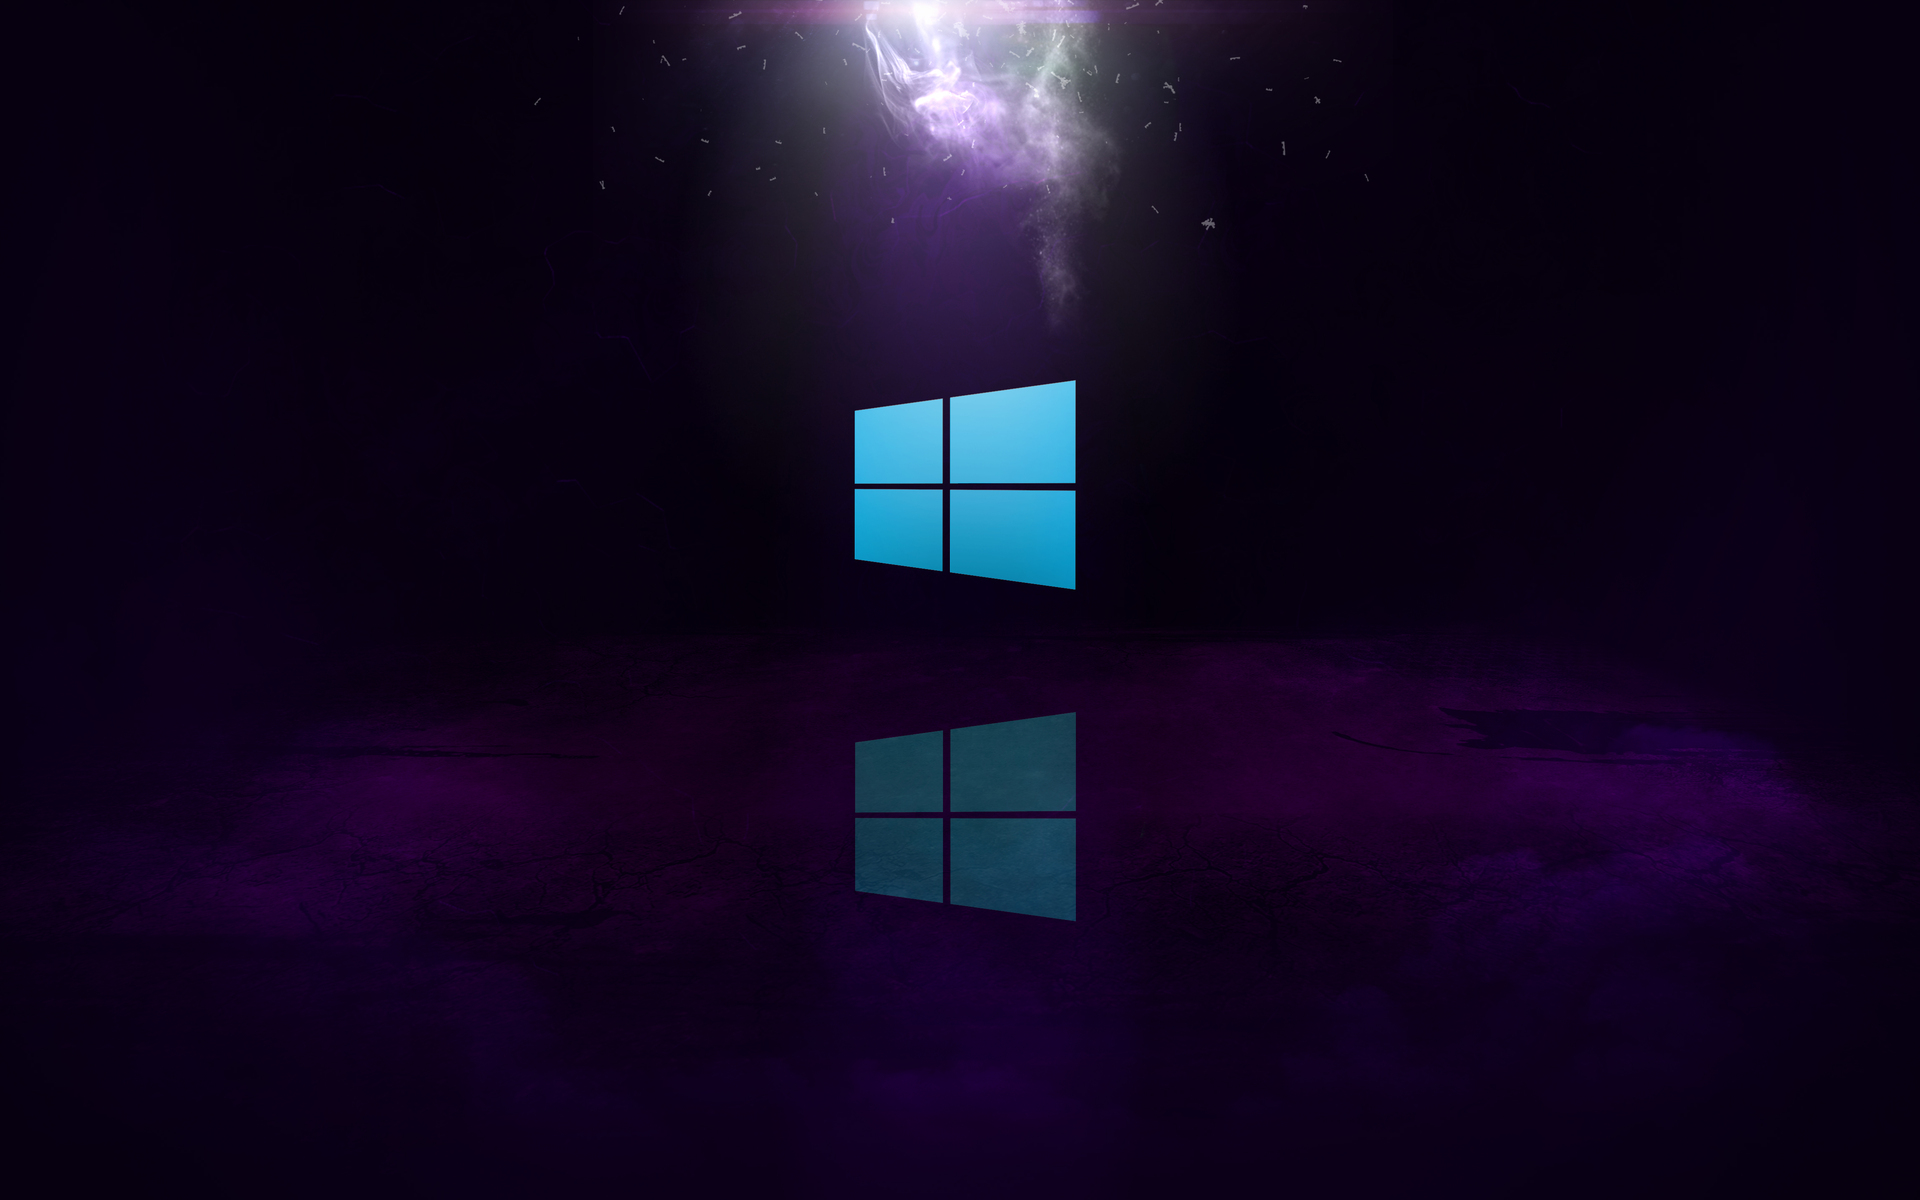 1920x1200 Windows 10 5k 1080p Resolution Hd 4k Wallpapers Images Backgrounds Photos And Pictures